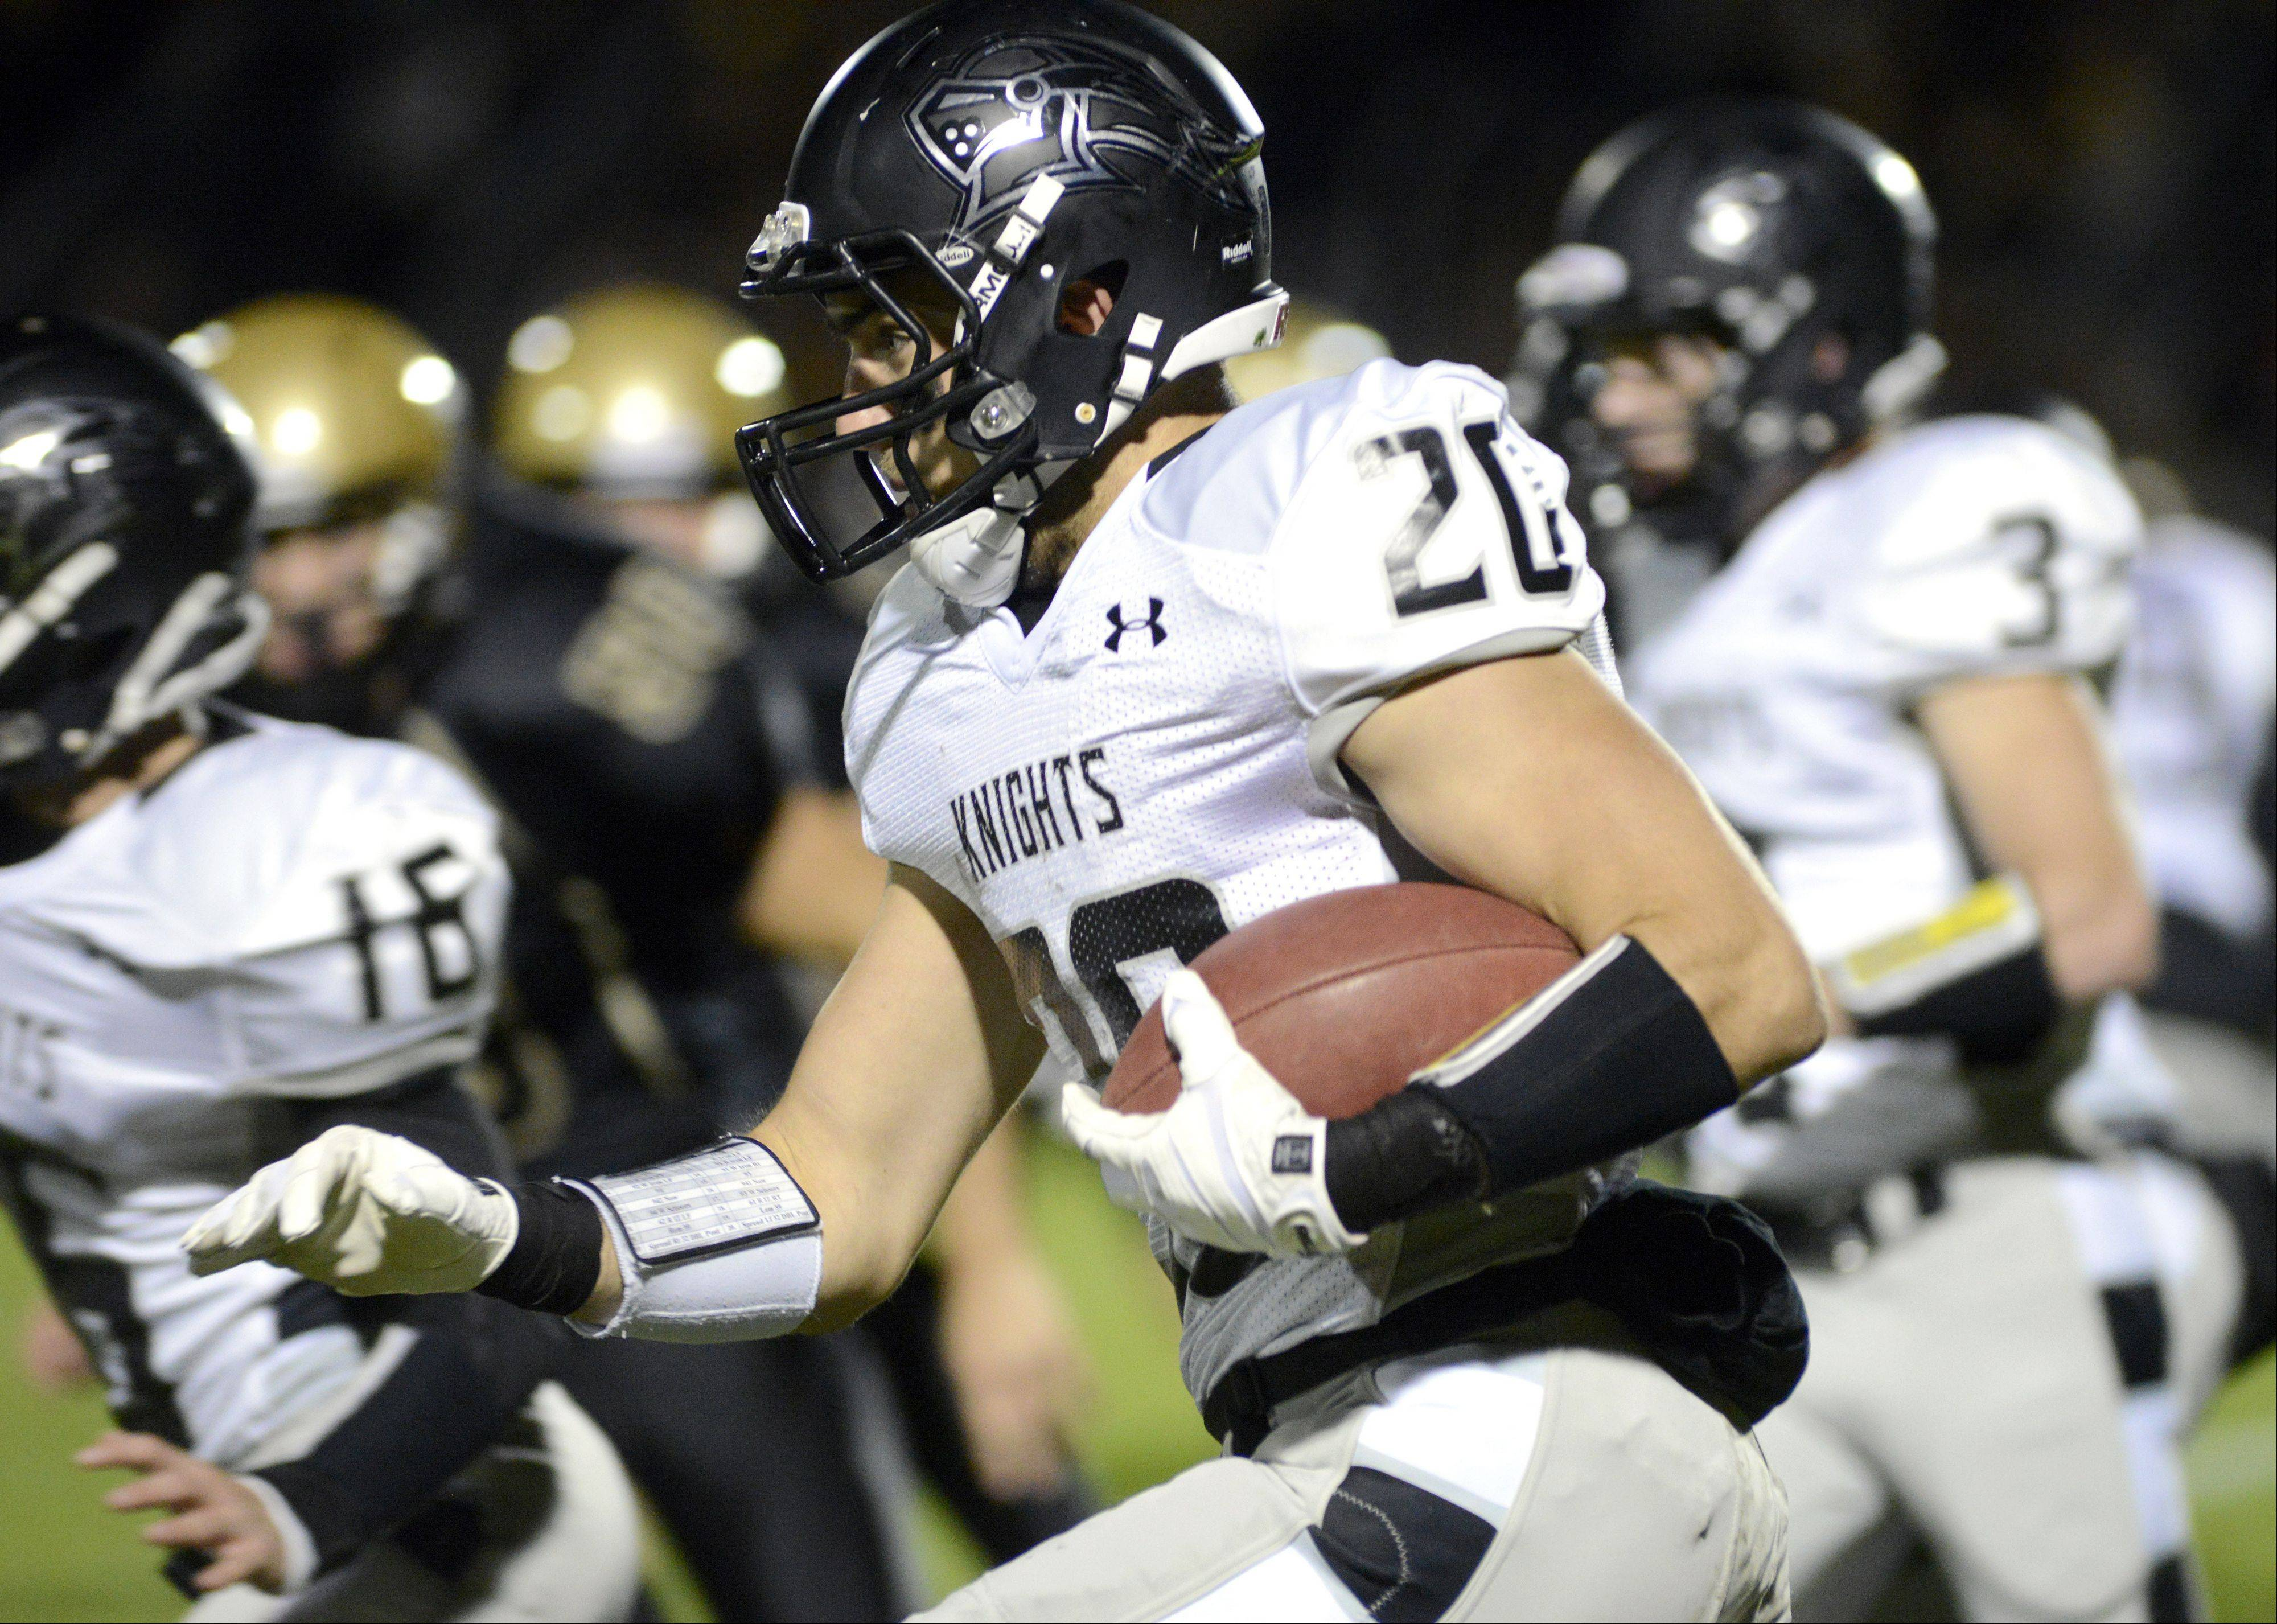 Kaneland's Dylan Nauert sprints down the center of the field in the first quarter.